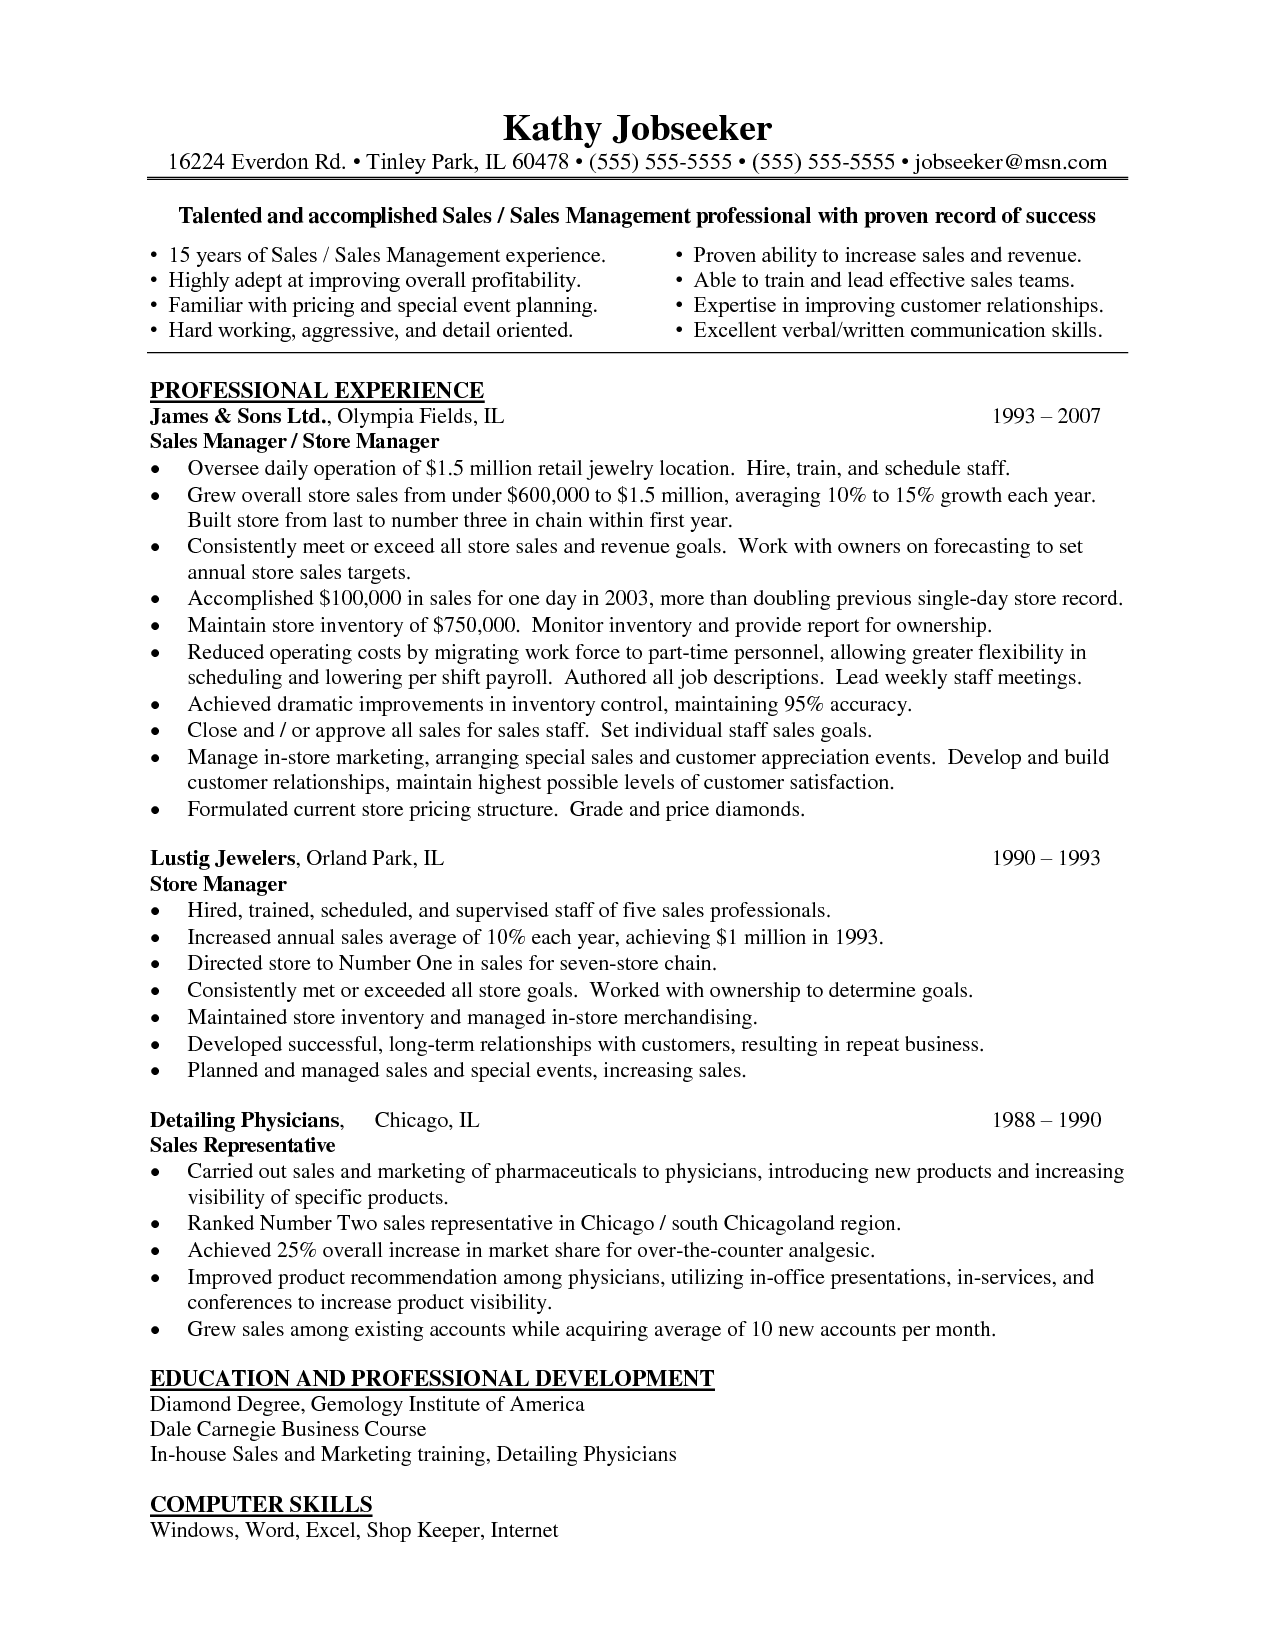 Wonderful Resume Examples For Retail Store Manager | Sample Cover Letter For Retail  Management Job 4